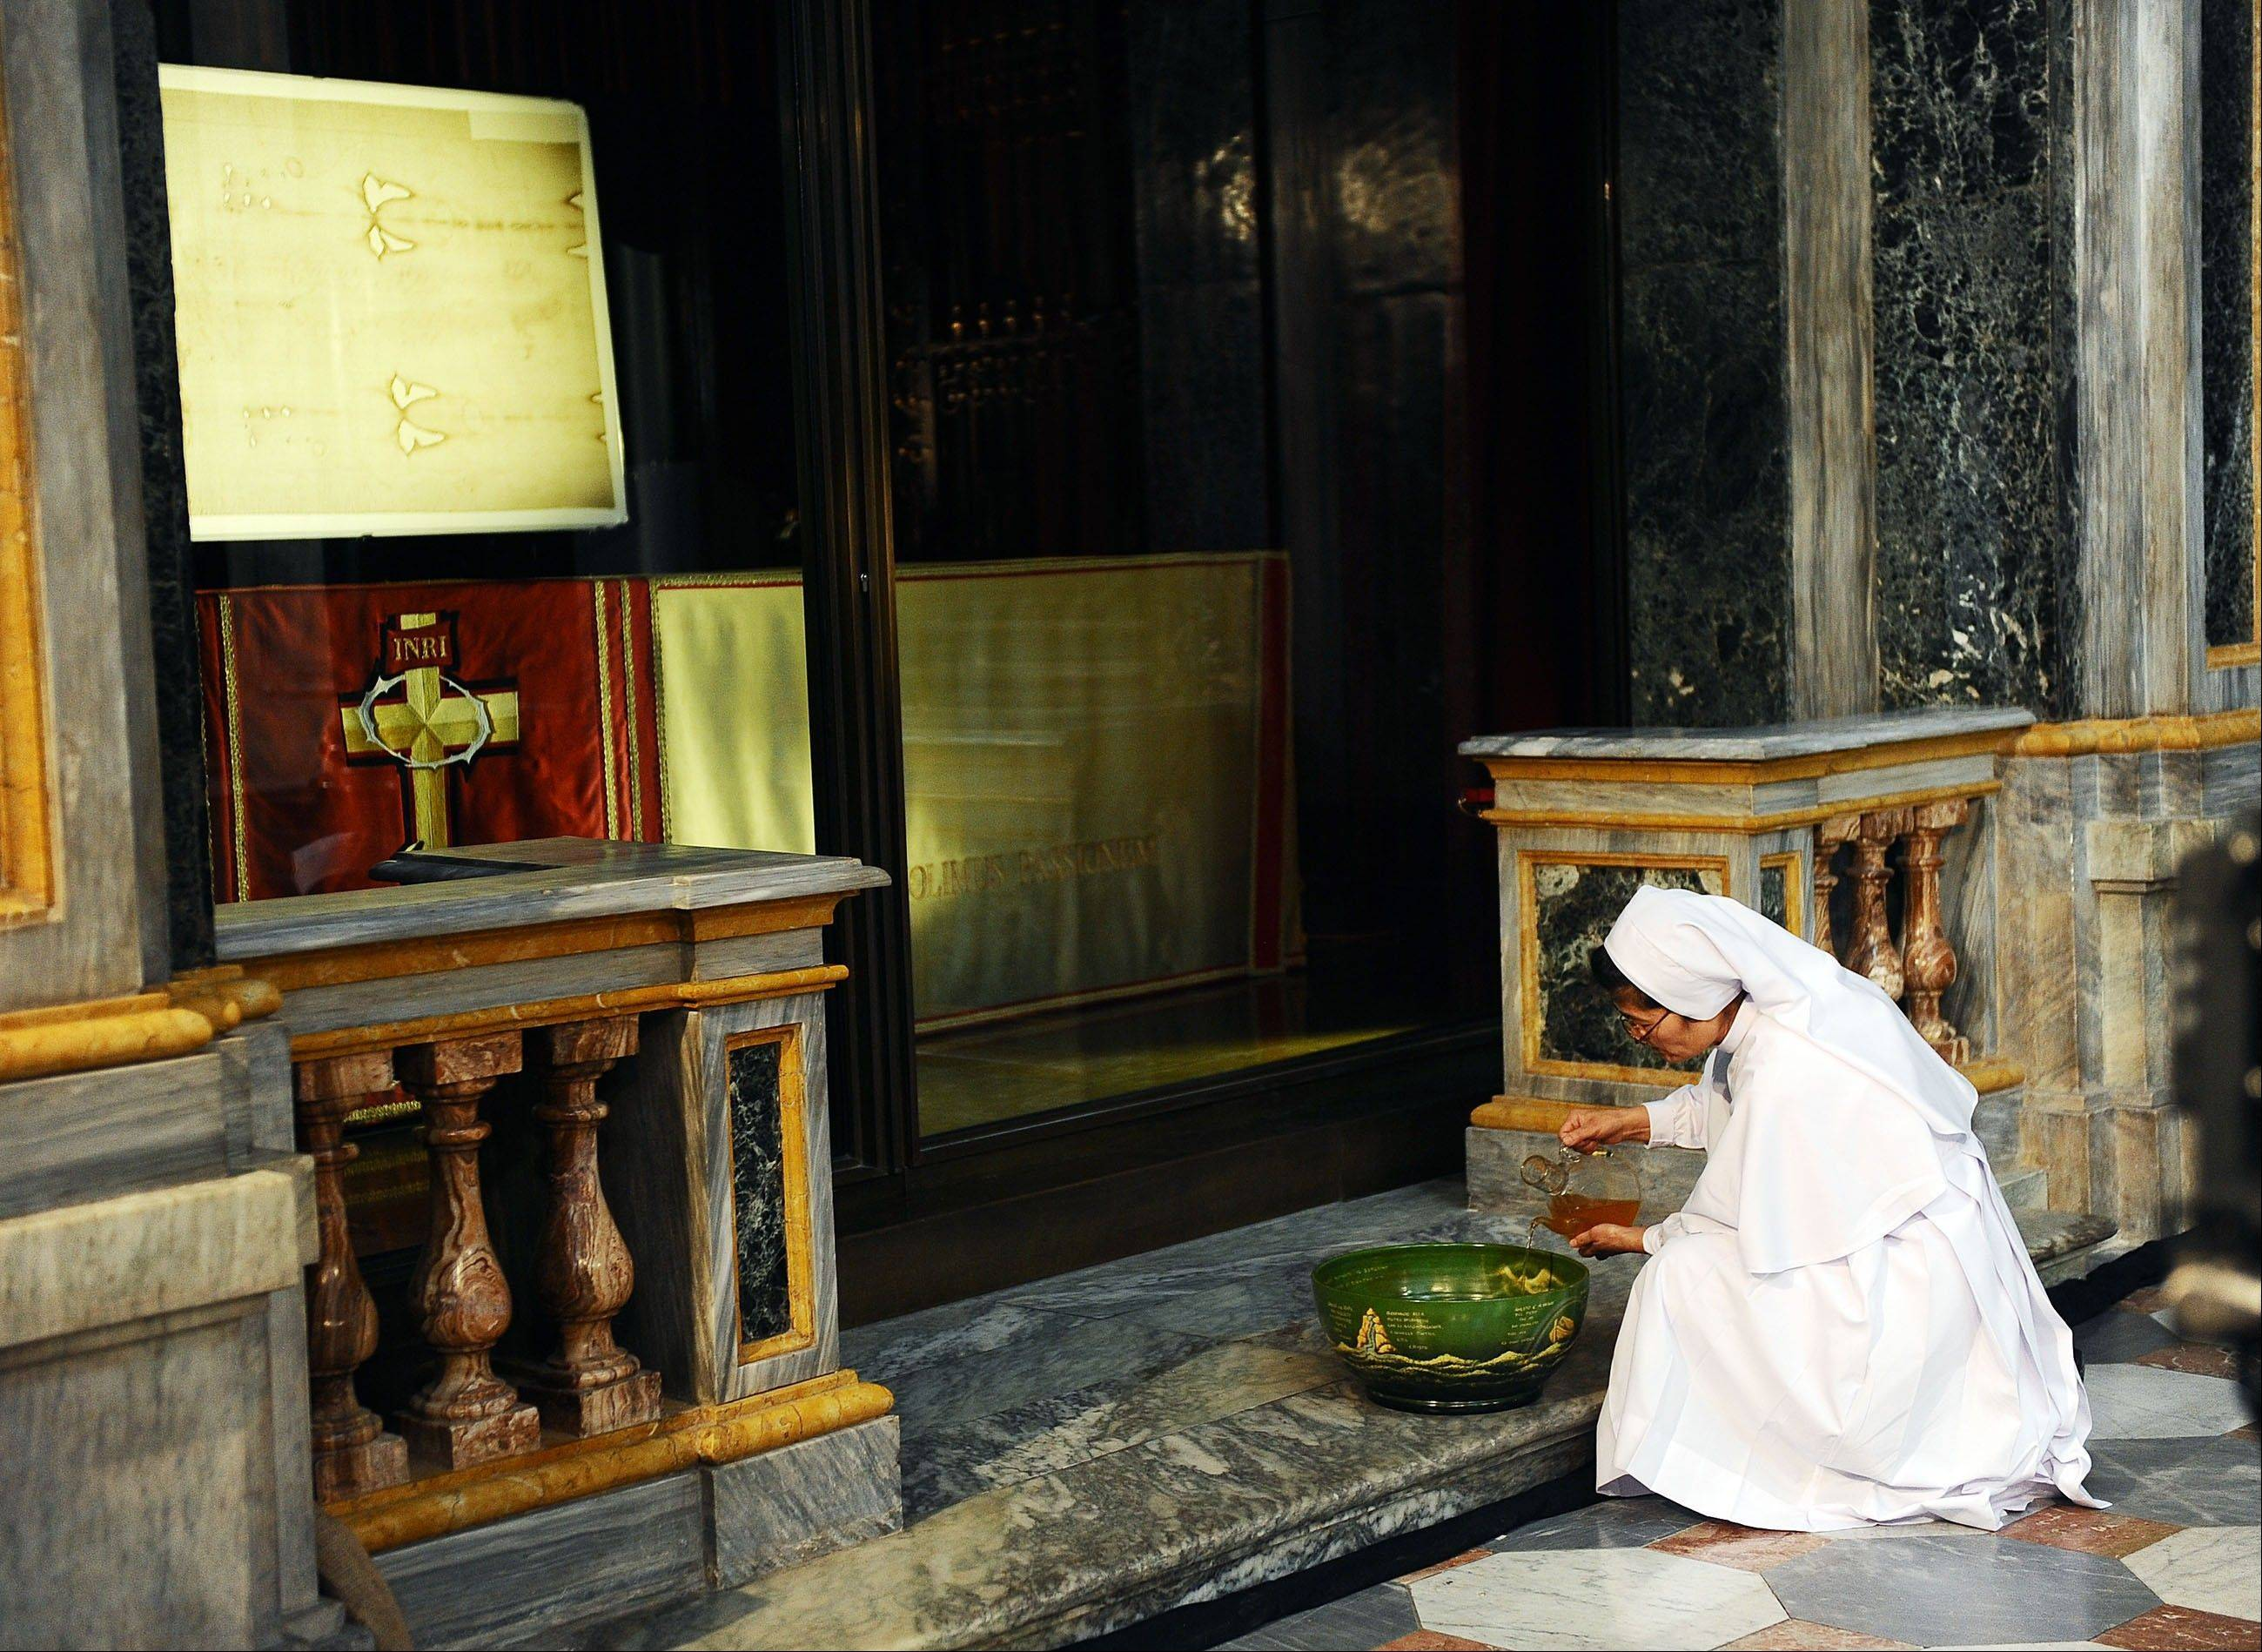 A nun pours oil in front of the Shroud of Turin Saturday that went on display for a special TV appearance, at the Turin cathedral, Italy. The Shroud went on display amid new research disputing claims it�s a medieval fake and purporting to date the linen some say was Jesus� burial cloth to around the time of his death.